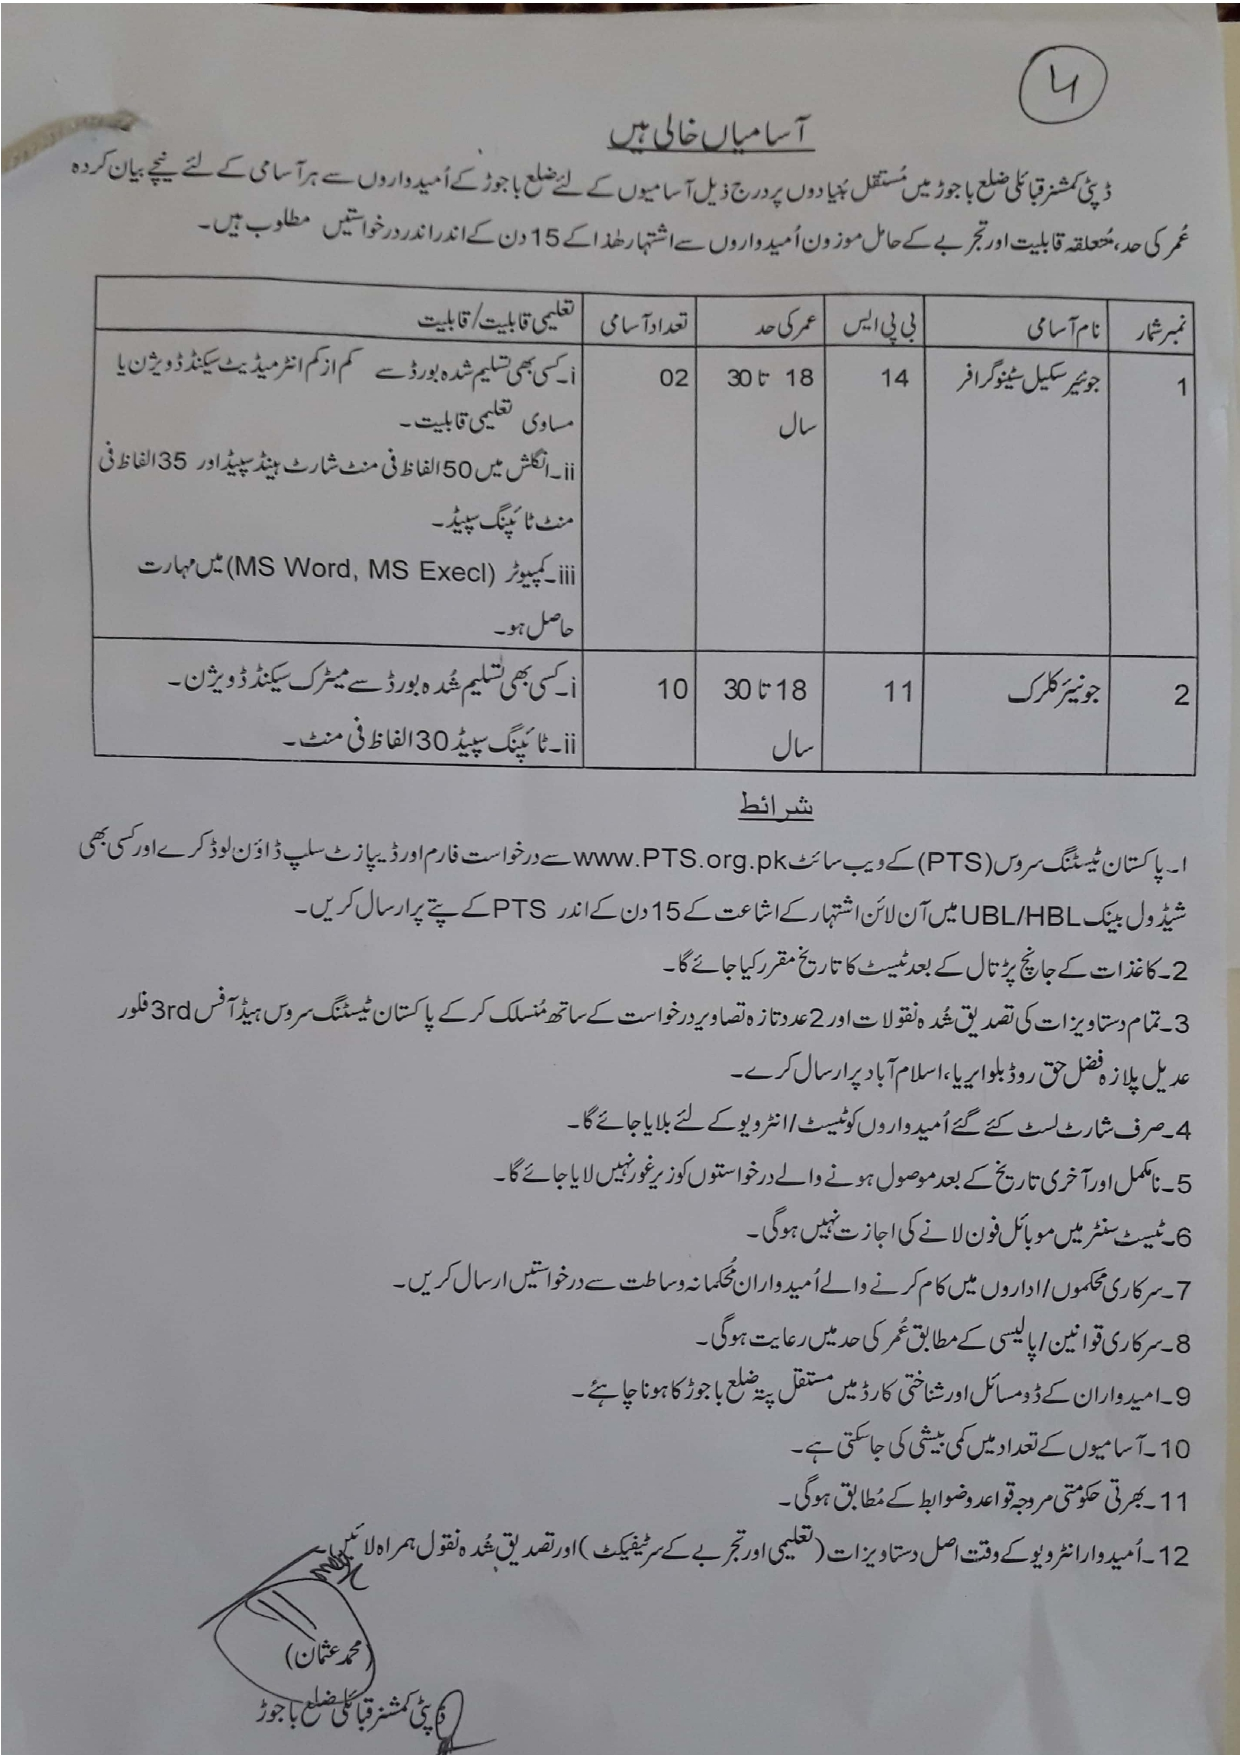 Deputy Commissioner Office Bajaur Jobs 2019 Download Roll No Slip Online